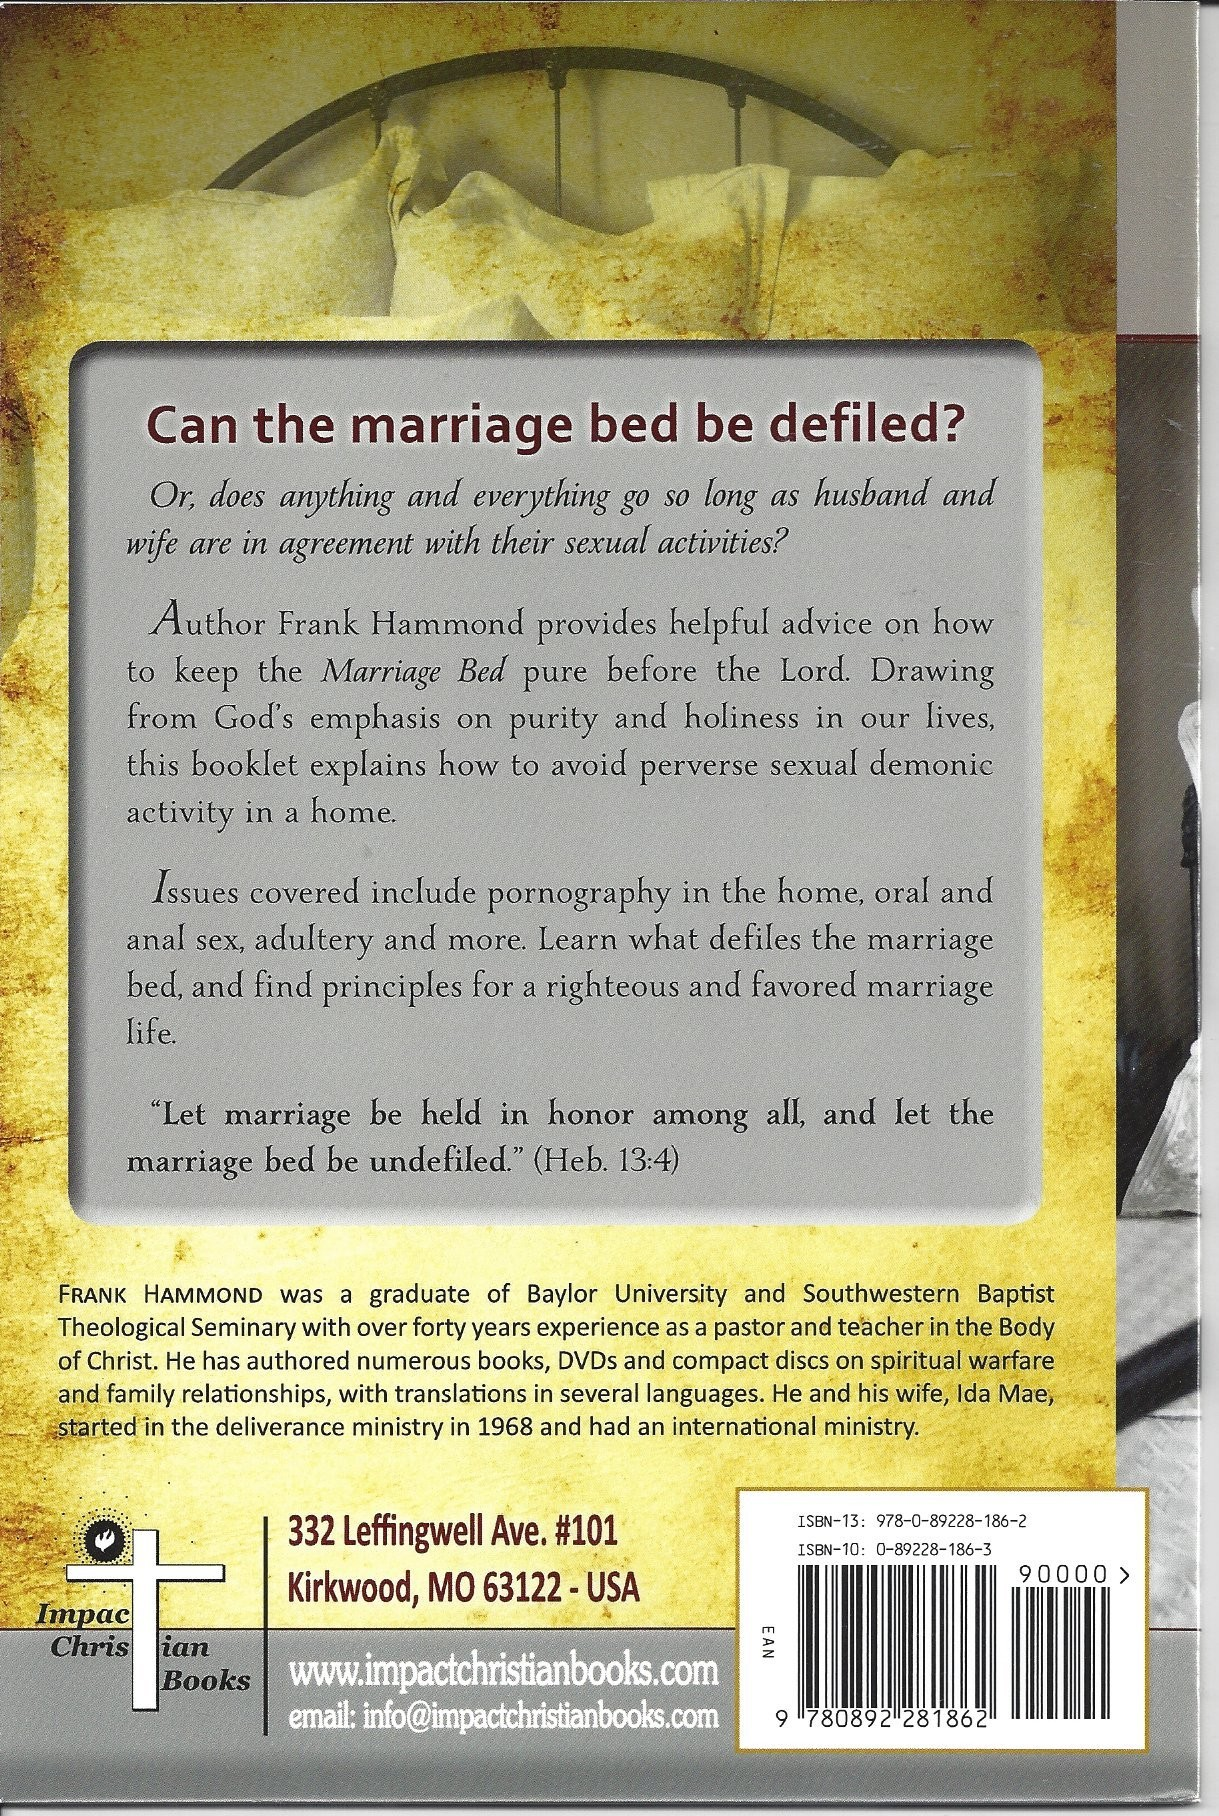 The Marriage Bed - Can the Marriage Bed Be Defiled - Agape